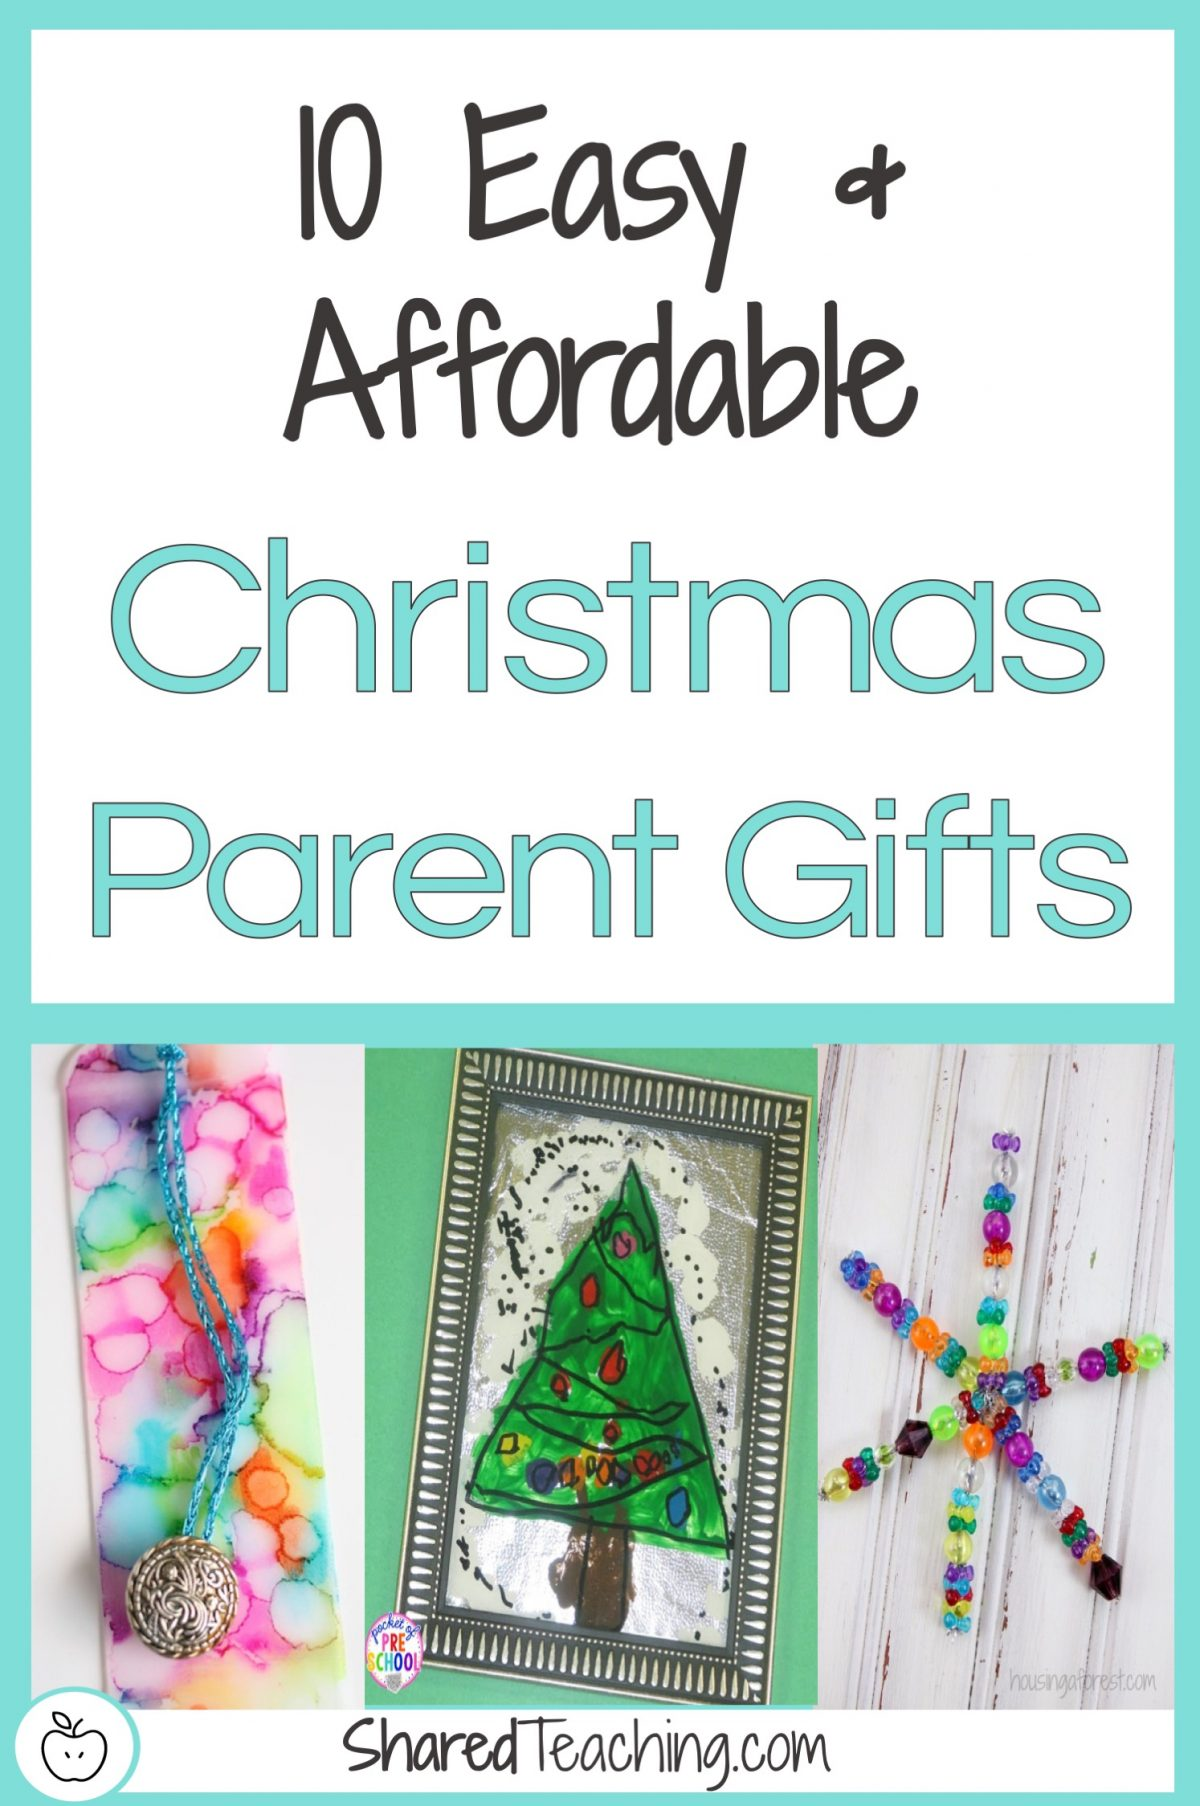 10 Easy and Affordable Christmas Gifts for Parents ...